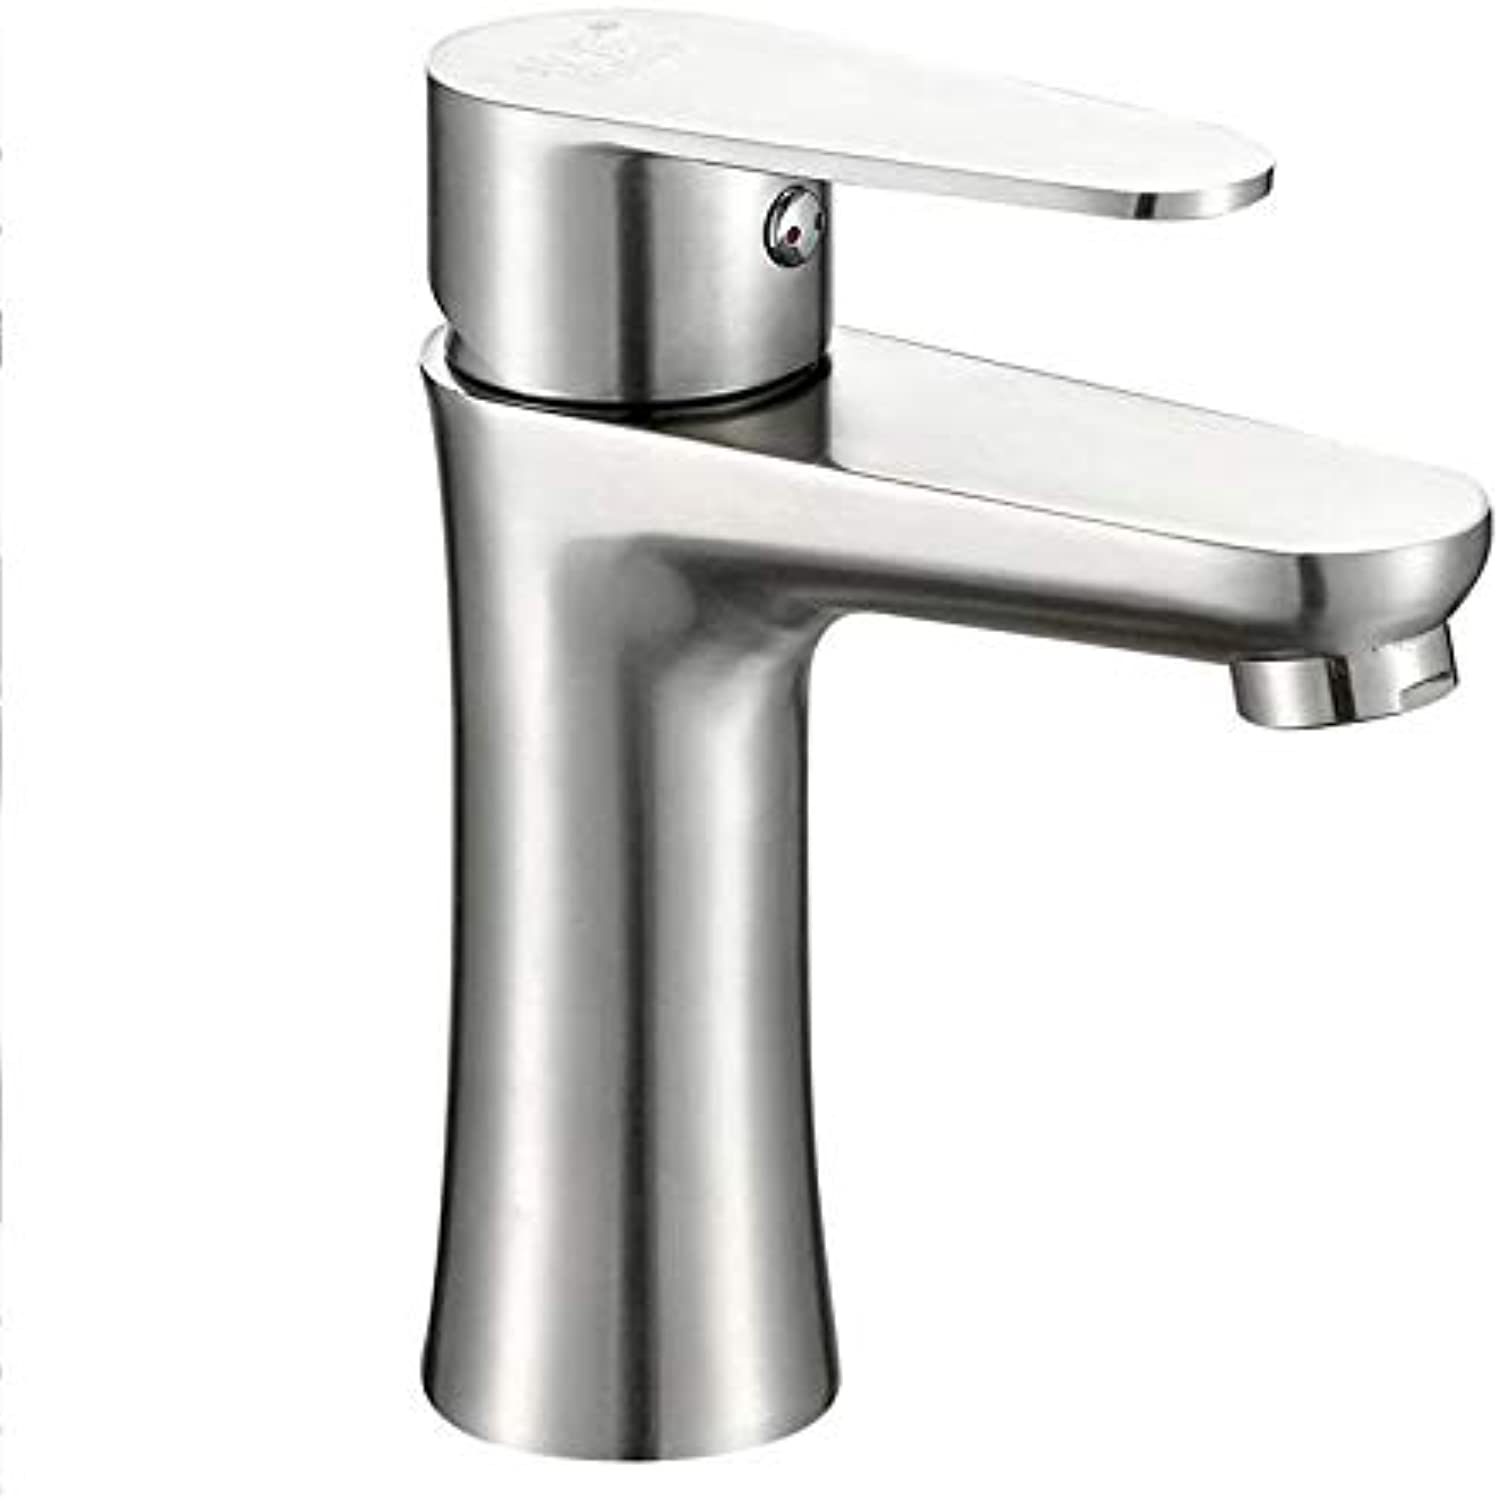 Faucet Basin Faucet304 Stainless Steel Basin Faucet Single Hole Hot and Cold Water Bathroom Washbasin Bathroom Counter Basin Faucet